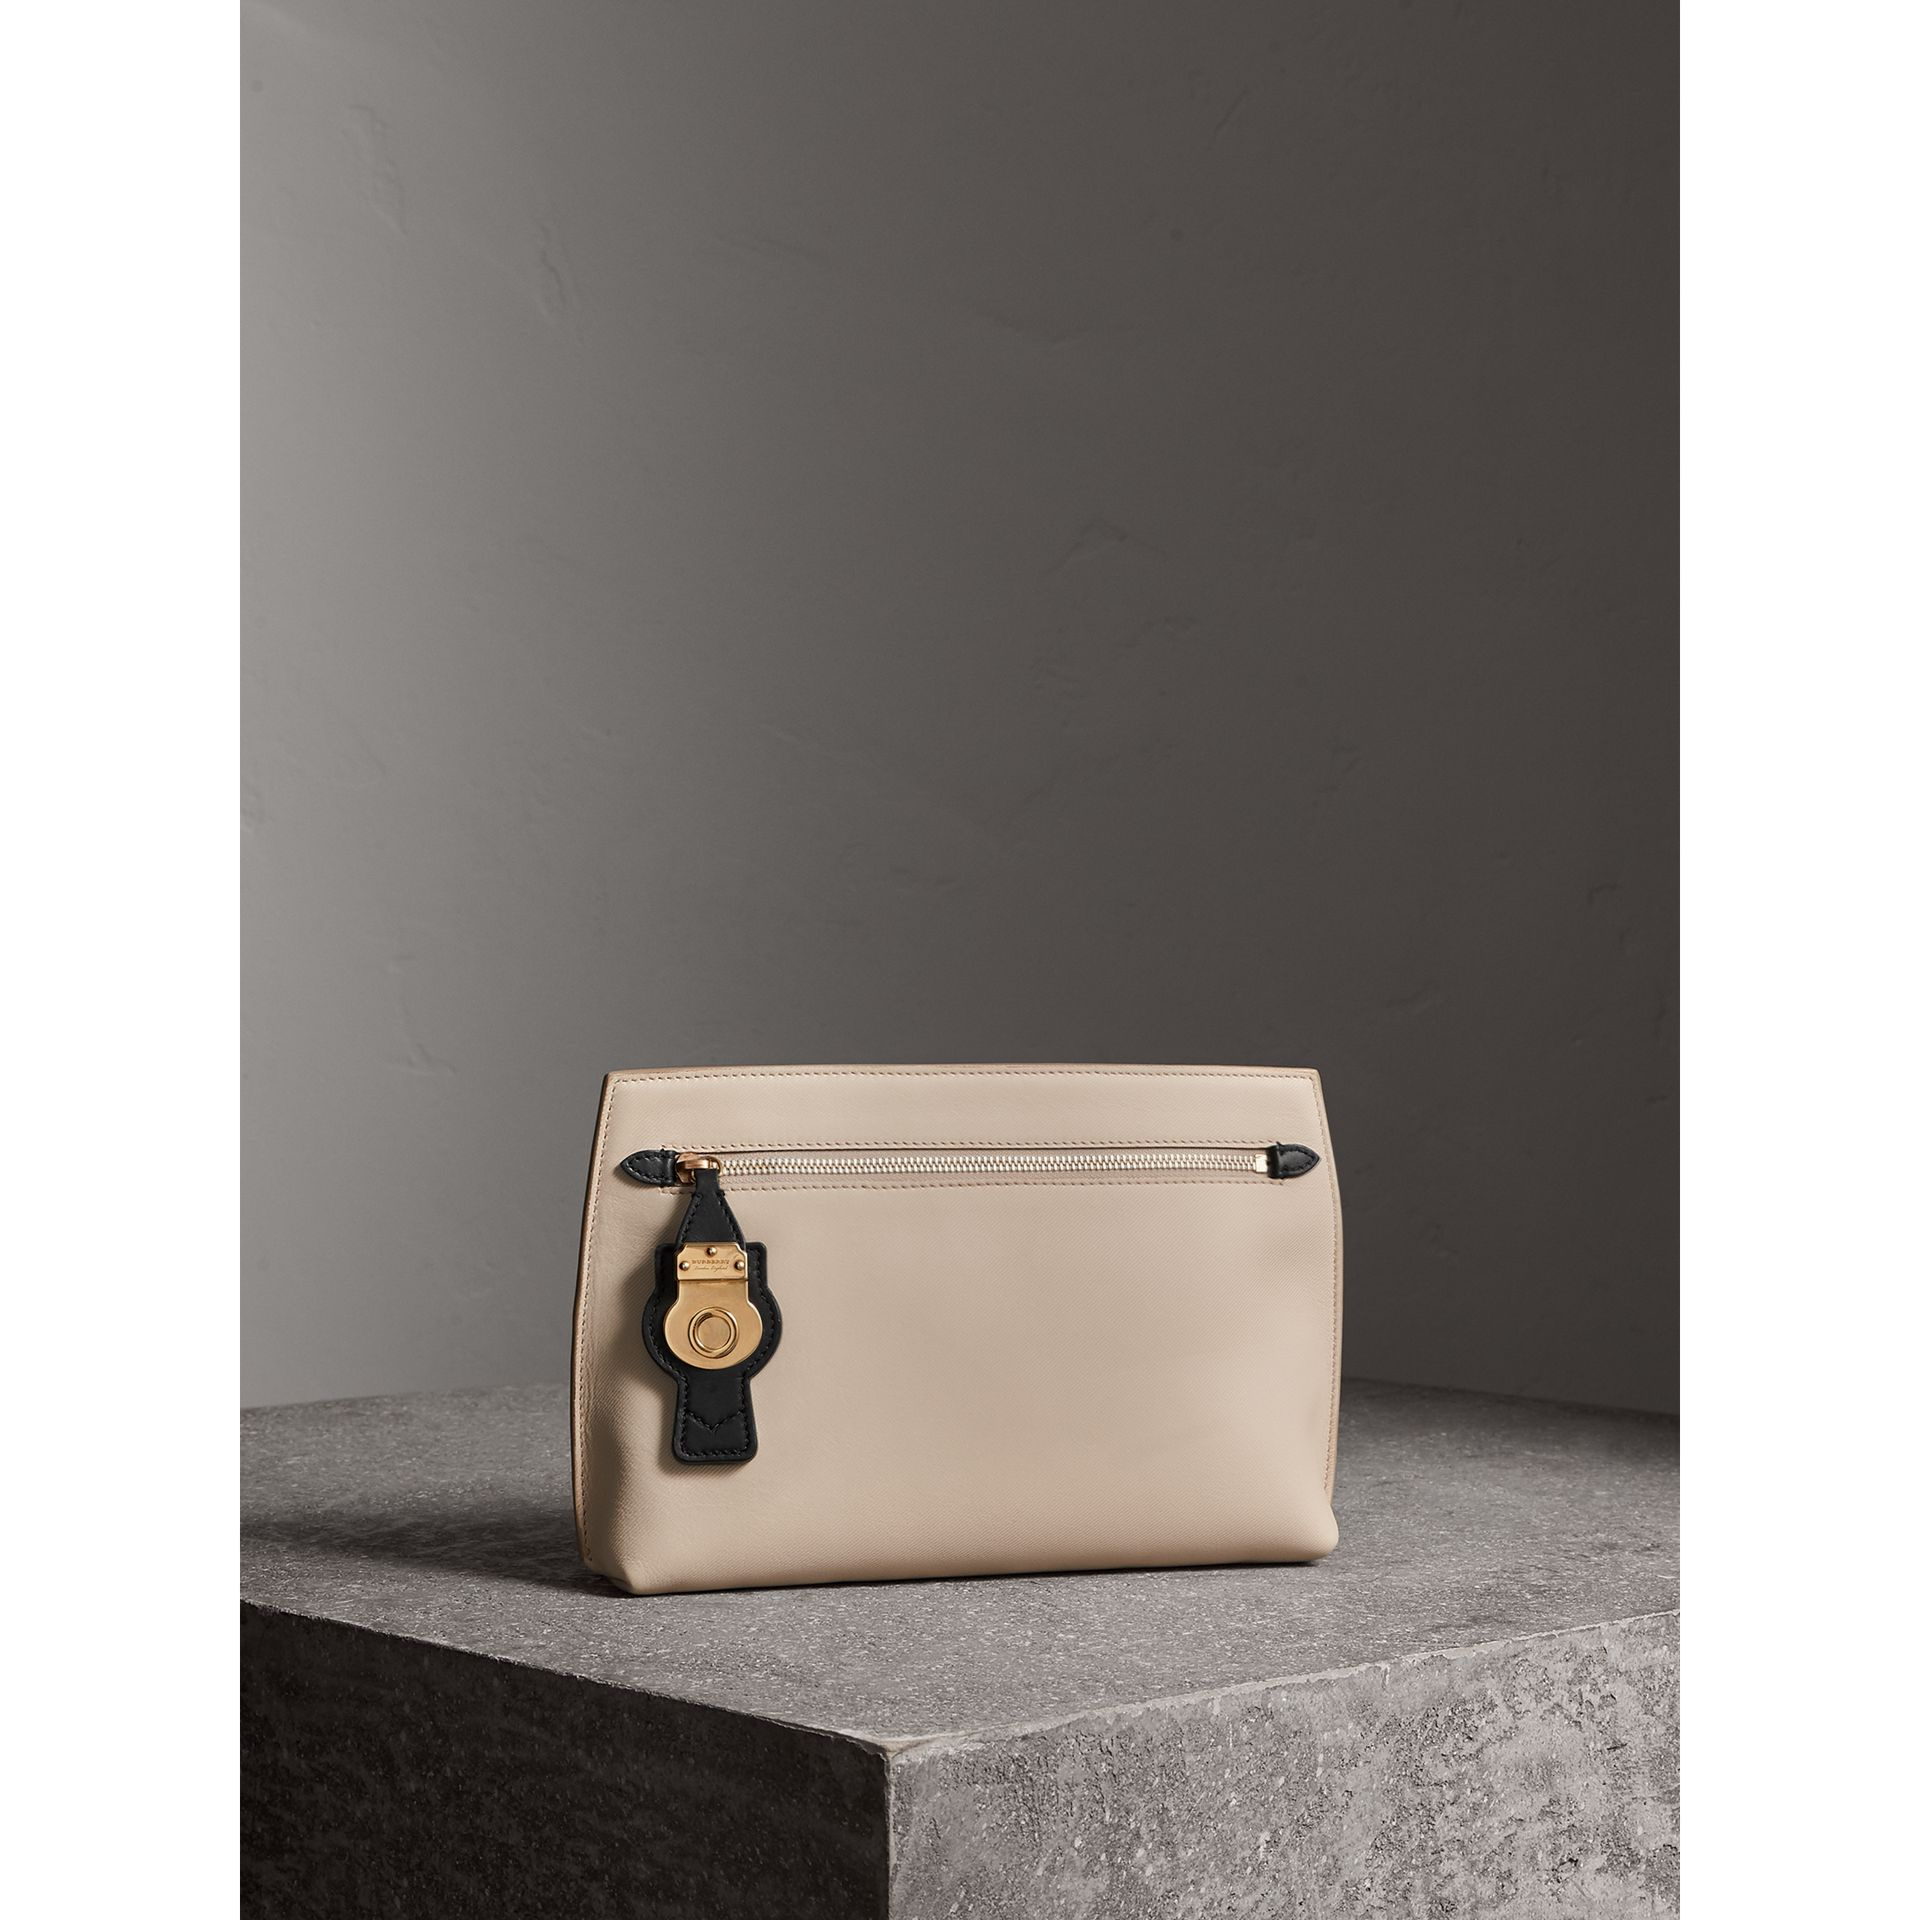 Two-tone Trench Leather Wristlet Pouch in Limestone/black - Women | Burberry Hong Kong - gallery image 5